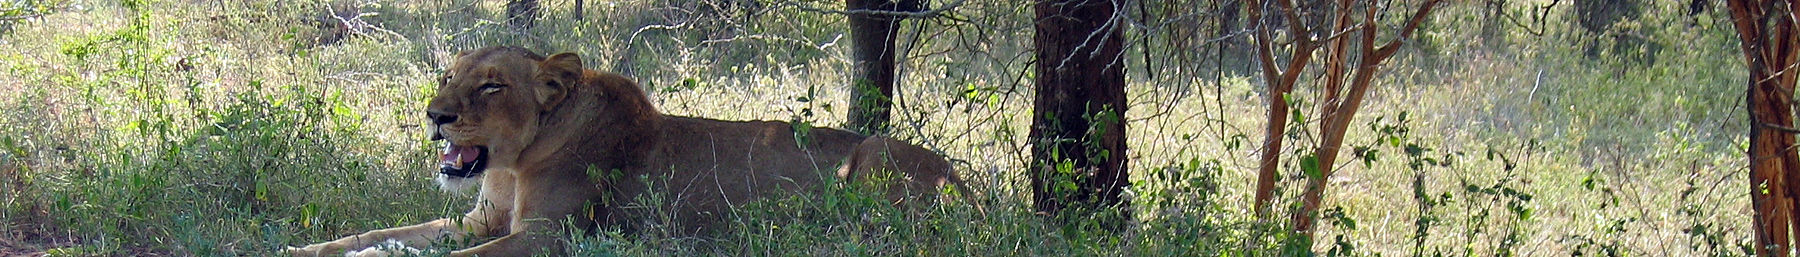 Kruger National Park banner Lion resting under a tree.jpg